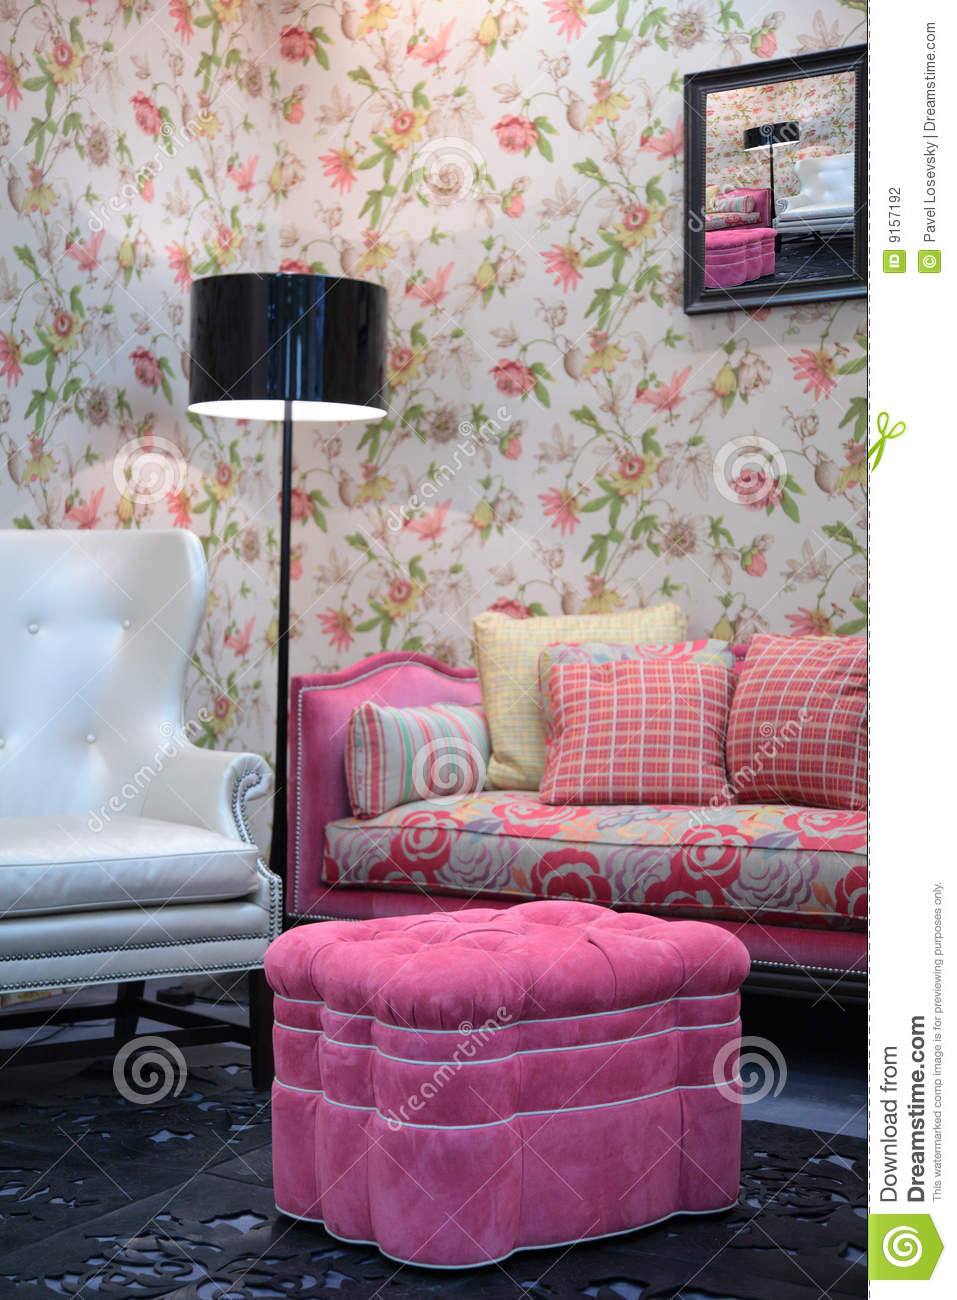 pouf in living room stock photography image 9157192